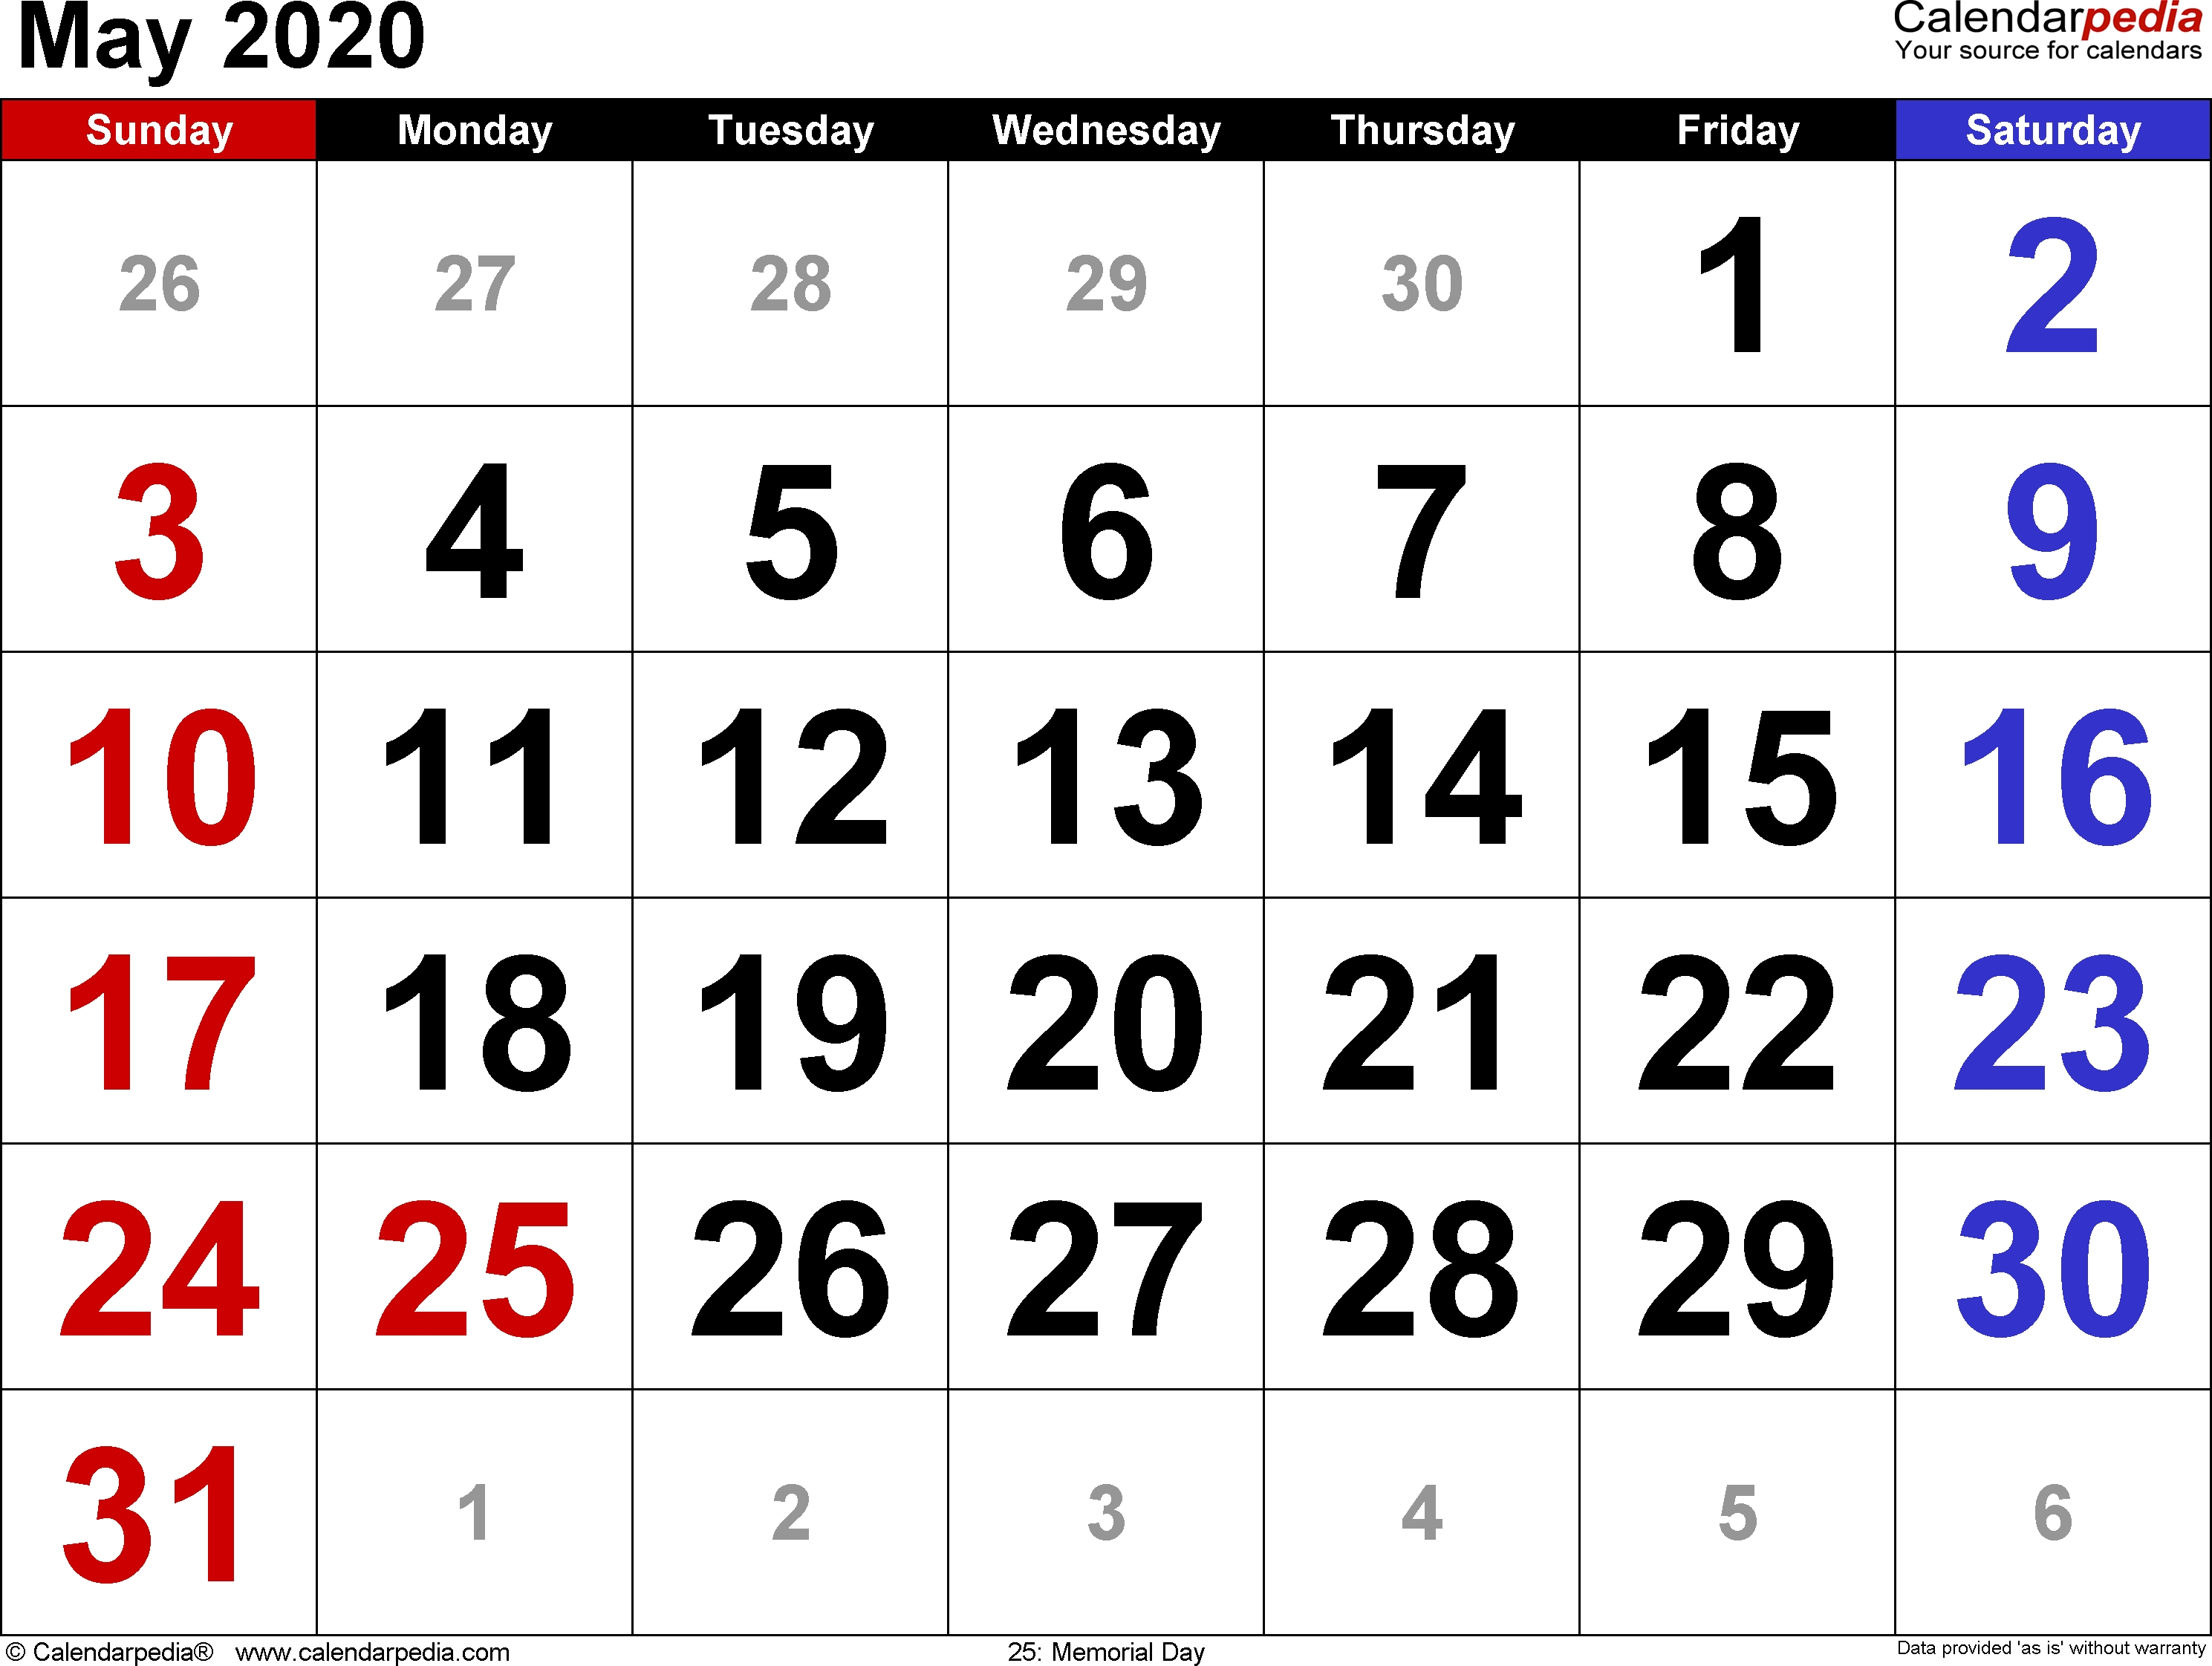 May 2020 Calendars For Word, Excel & Pdf